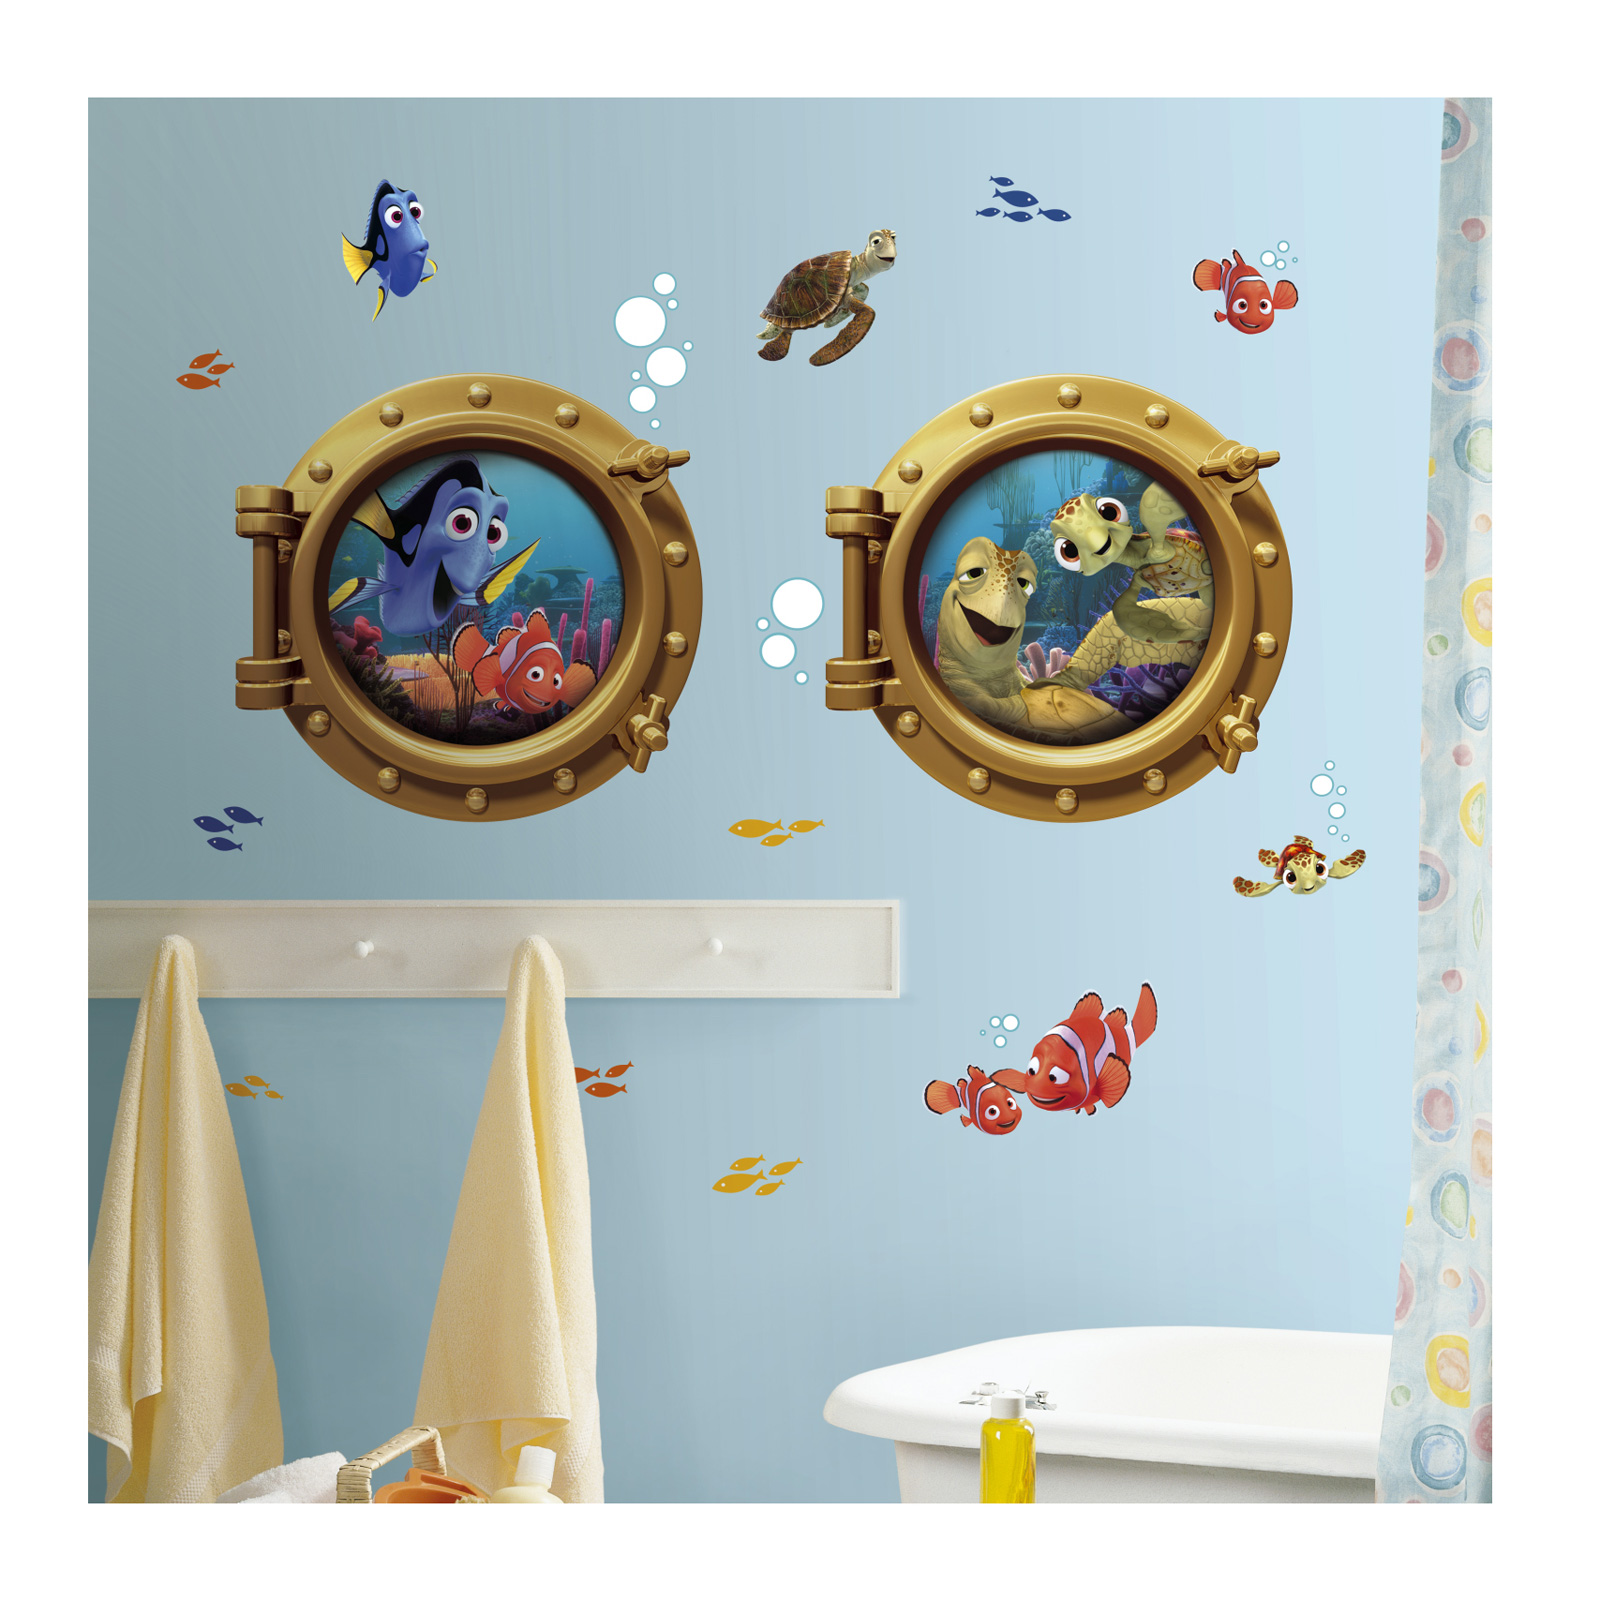 Finding Nemo Giant Wall Wall Decals by Stardom Specialty in USA